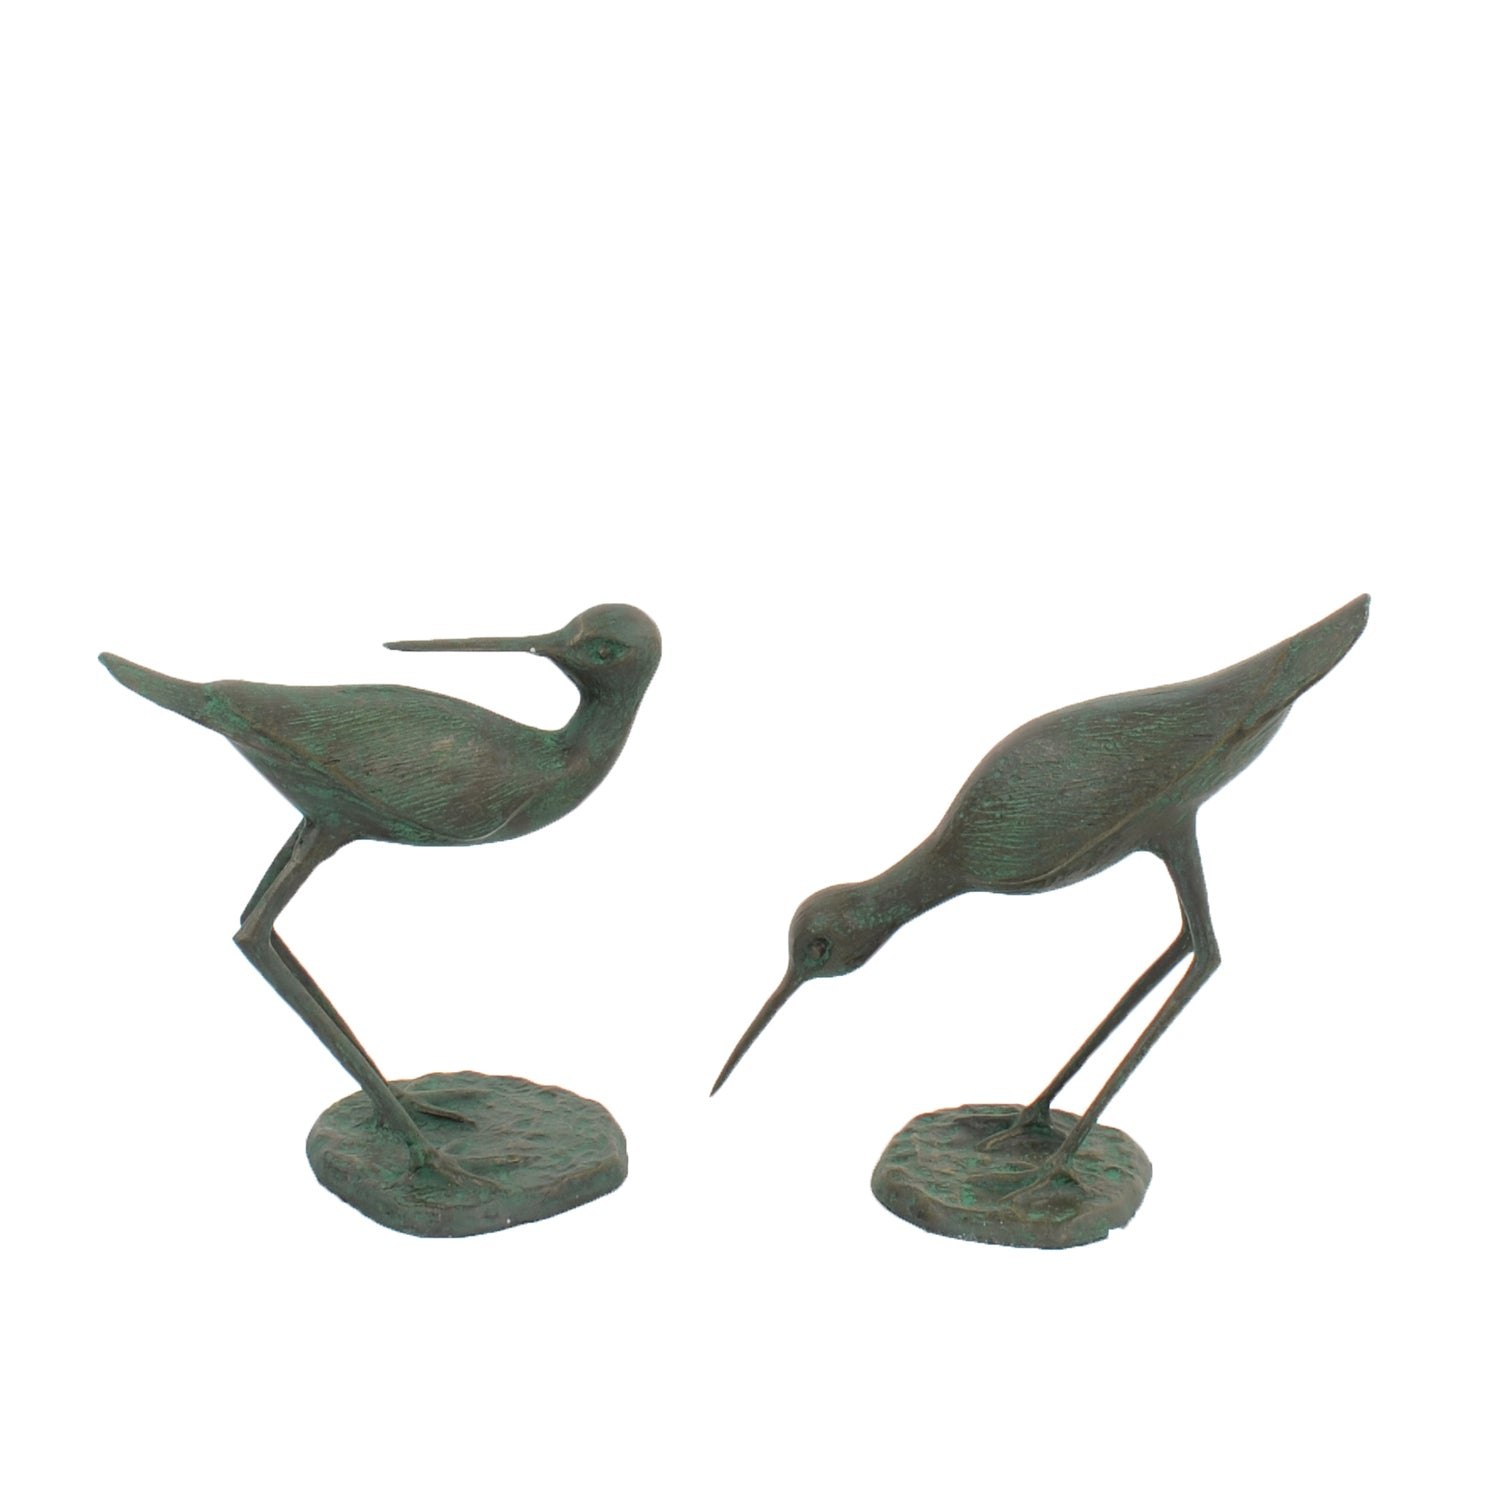 Solstice Sculptures Sandpipers Pair 31&29cm Aluminium Dark Verdigris - Ruby's Garden Boutique